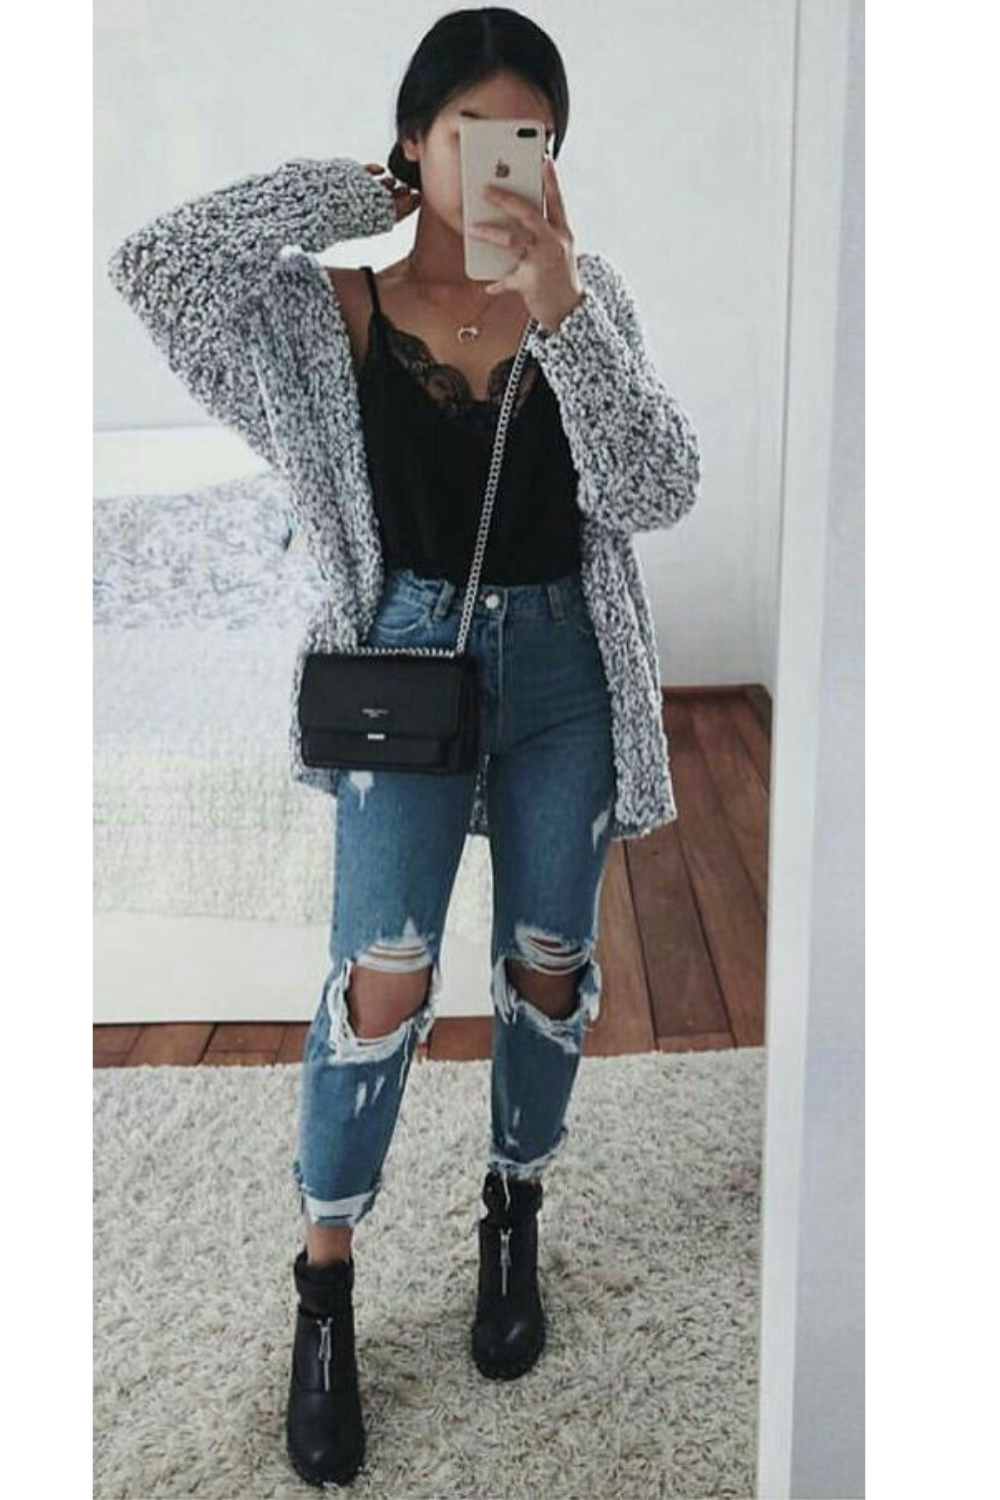 Best Trendy Outfits for women that are fashionable. #For_Summer #For_School #For... - Best Trendy Outfits for women that are fashionable. #For_Summer #For_School #For_Women #Curvy #Winter Source by snugglingzone1 Source by AryannaHegmannFashion -